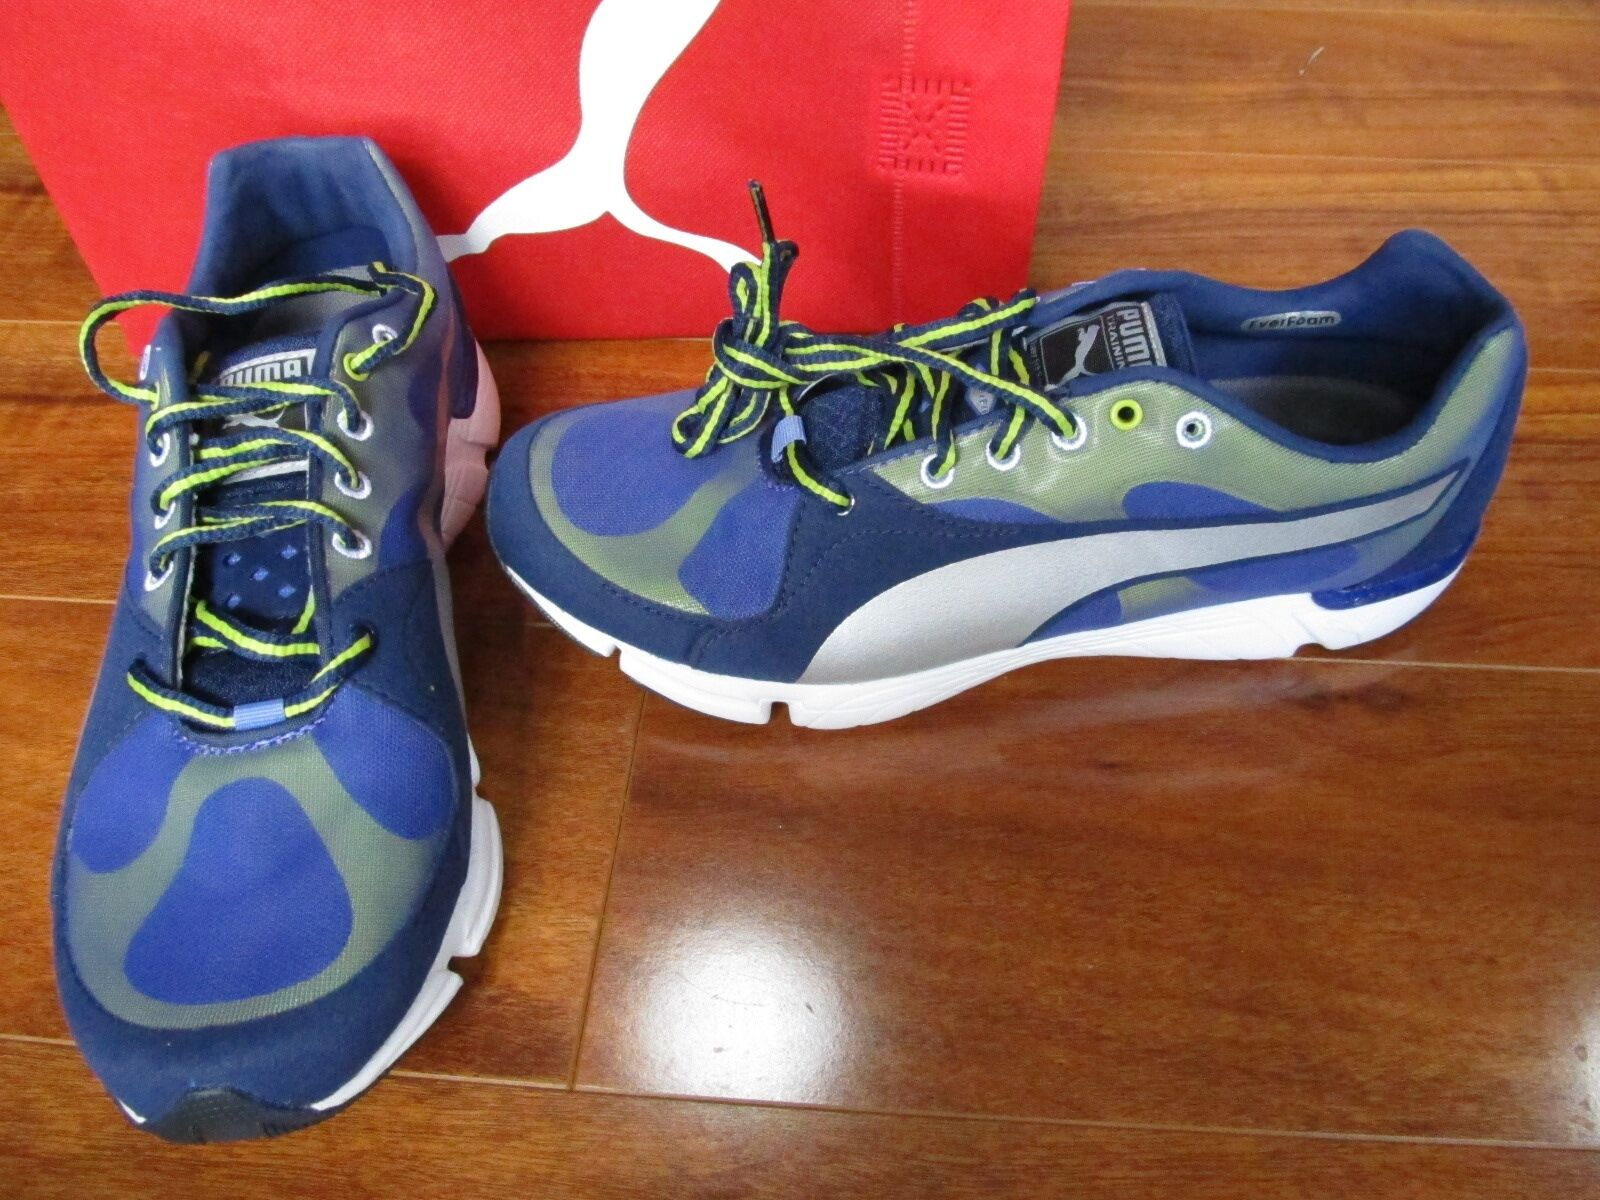 NEW PUMA FormLite XT Running Training Shoes 7.5 Womens 7.5 Shoes  Violet/Blue 186210 $80. ea3c99